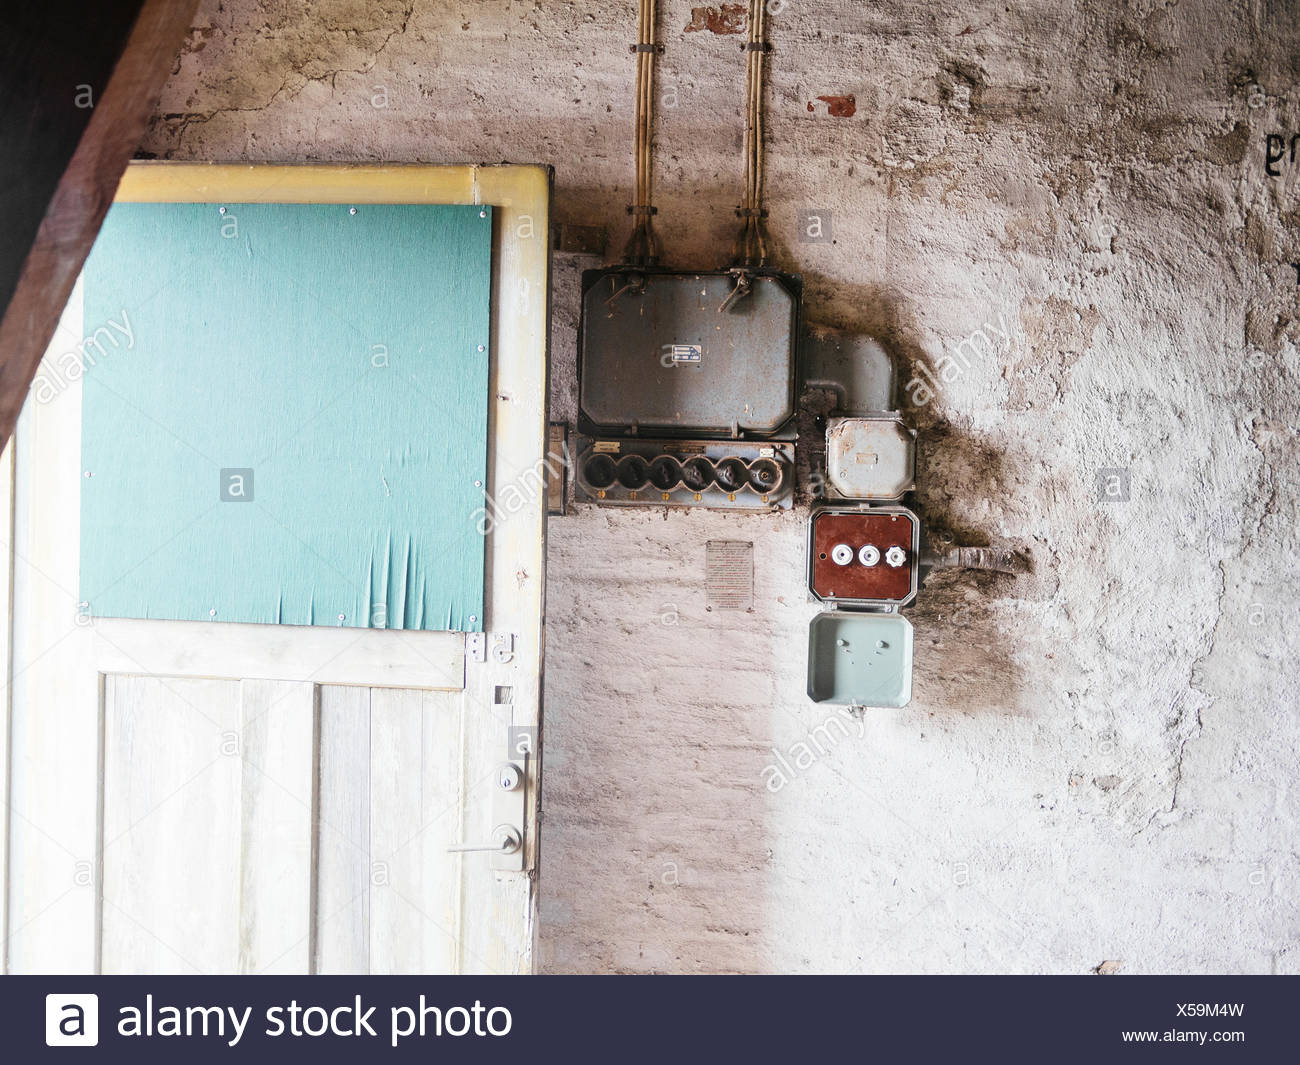 old electrical fuse box stock photos old electrical fuse. Black Bedroom Furniture Sets. Home Design Ideas